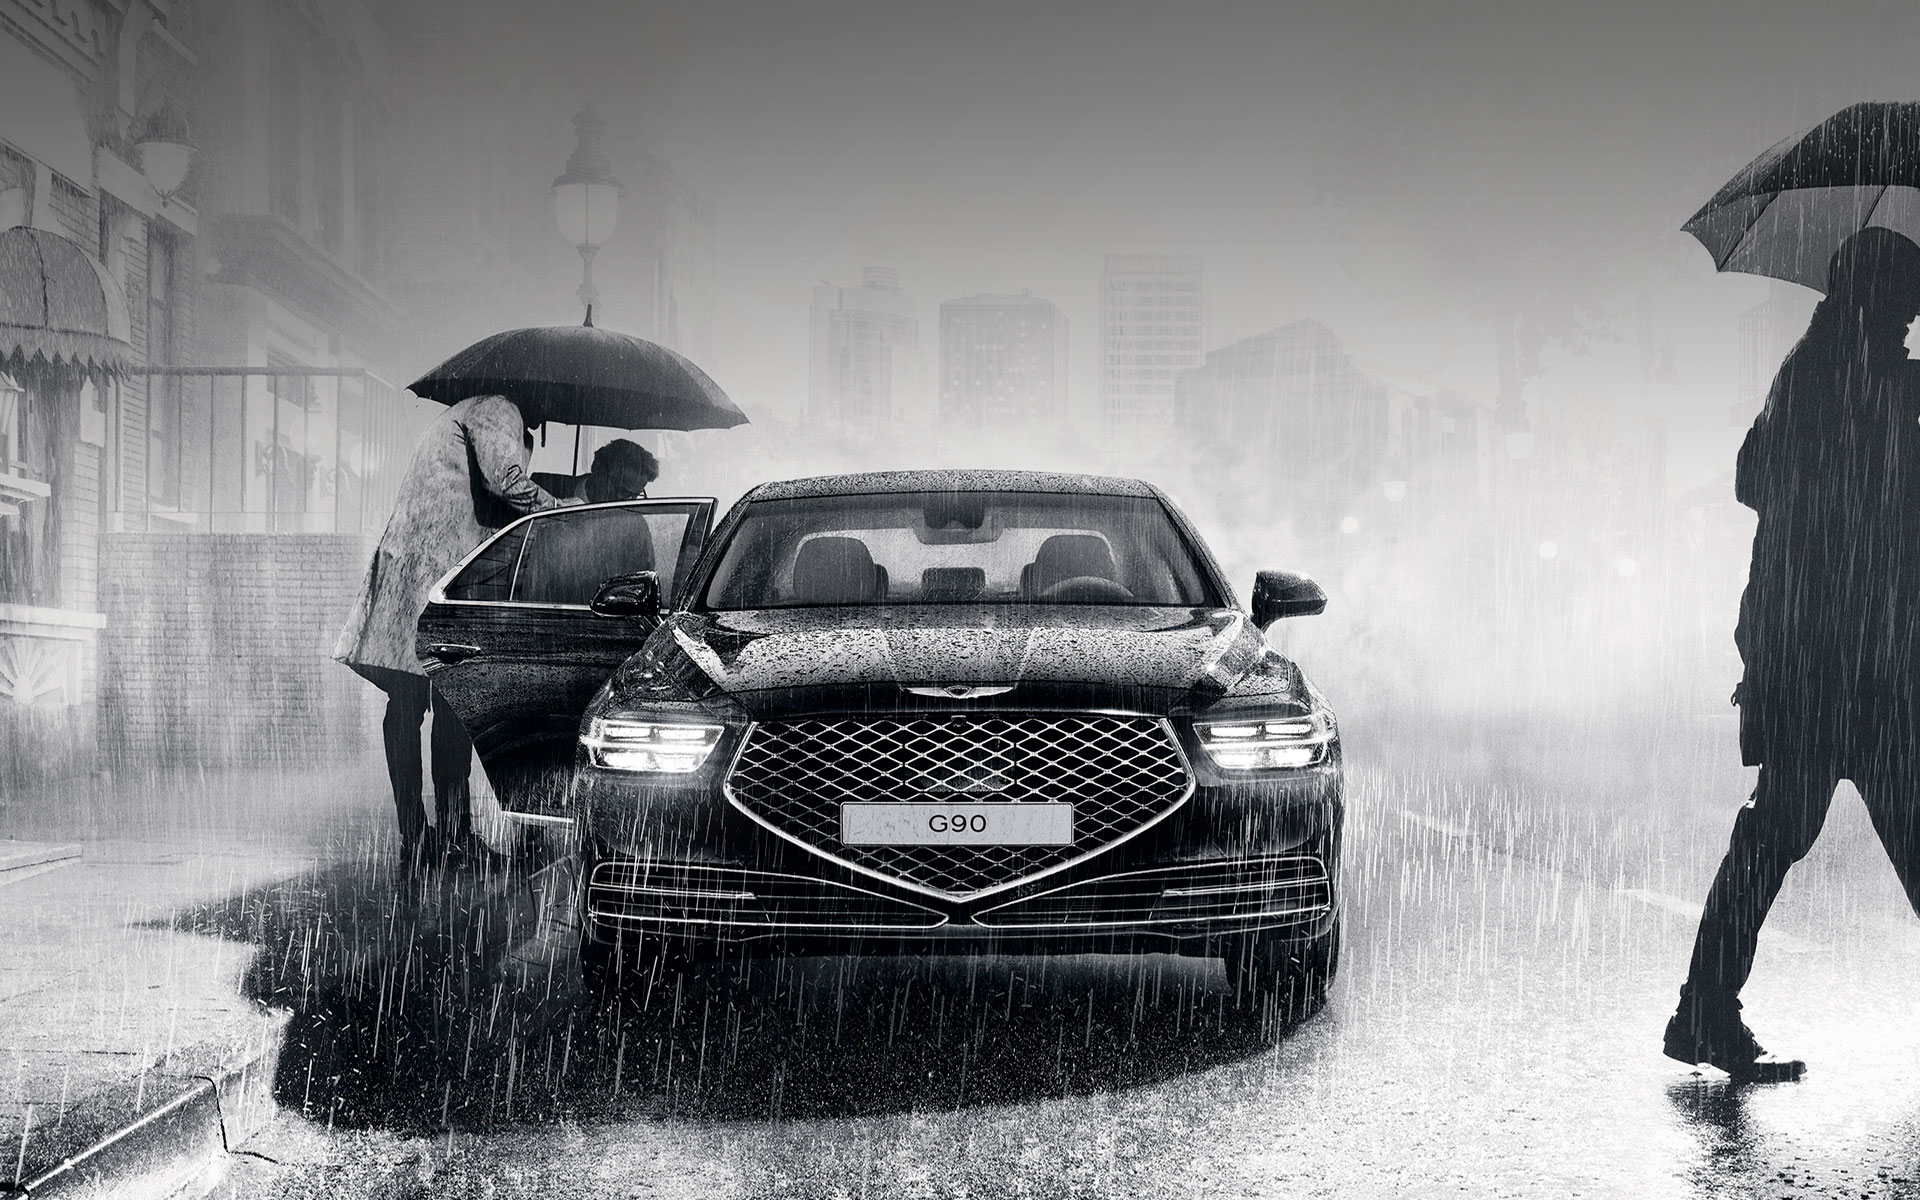 GENESIS G90 Design Features - G-matrix patterned Quadlamps